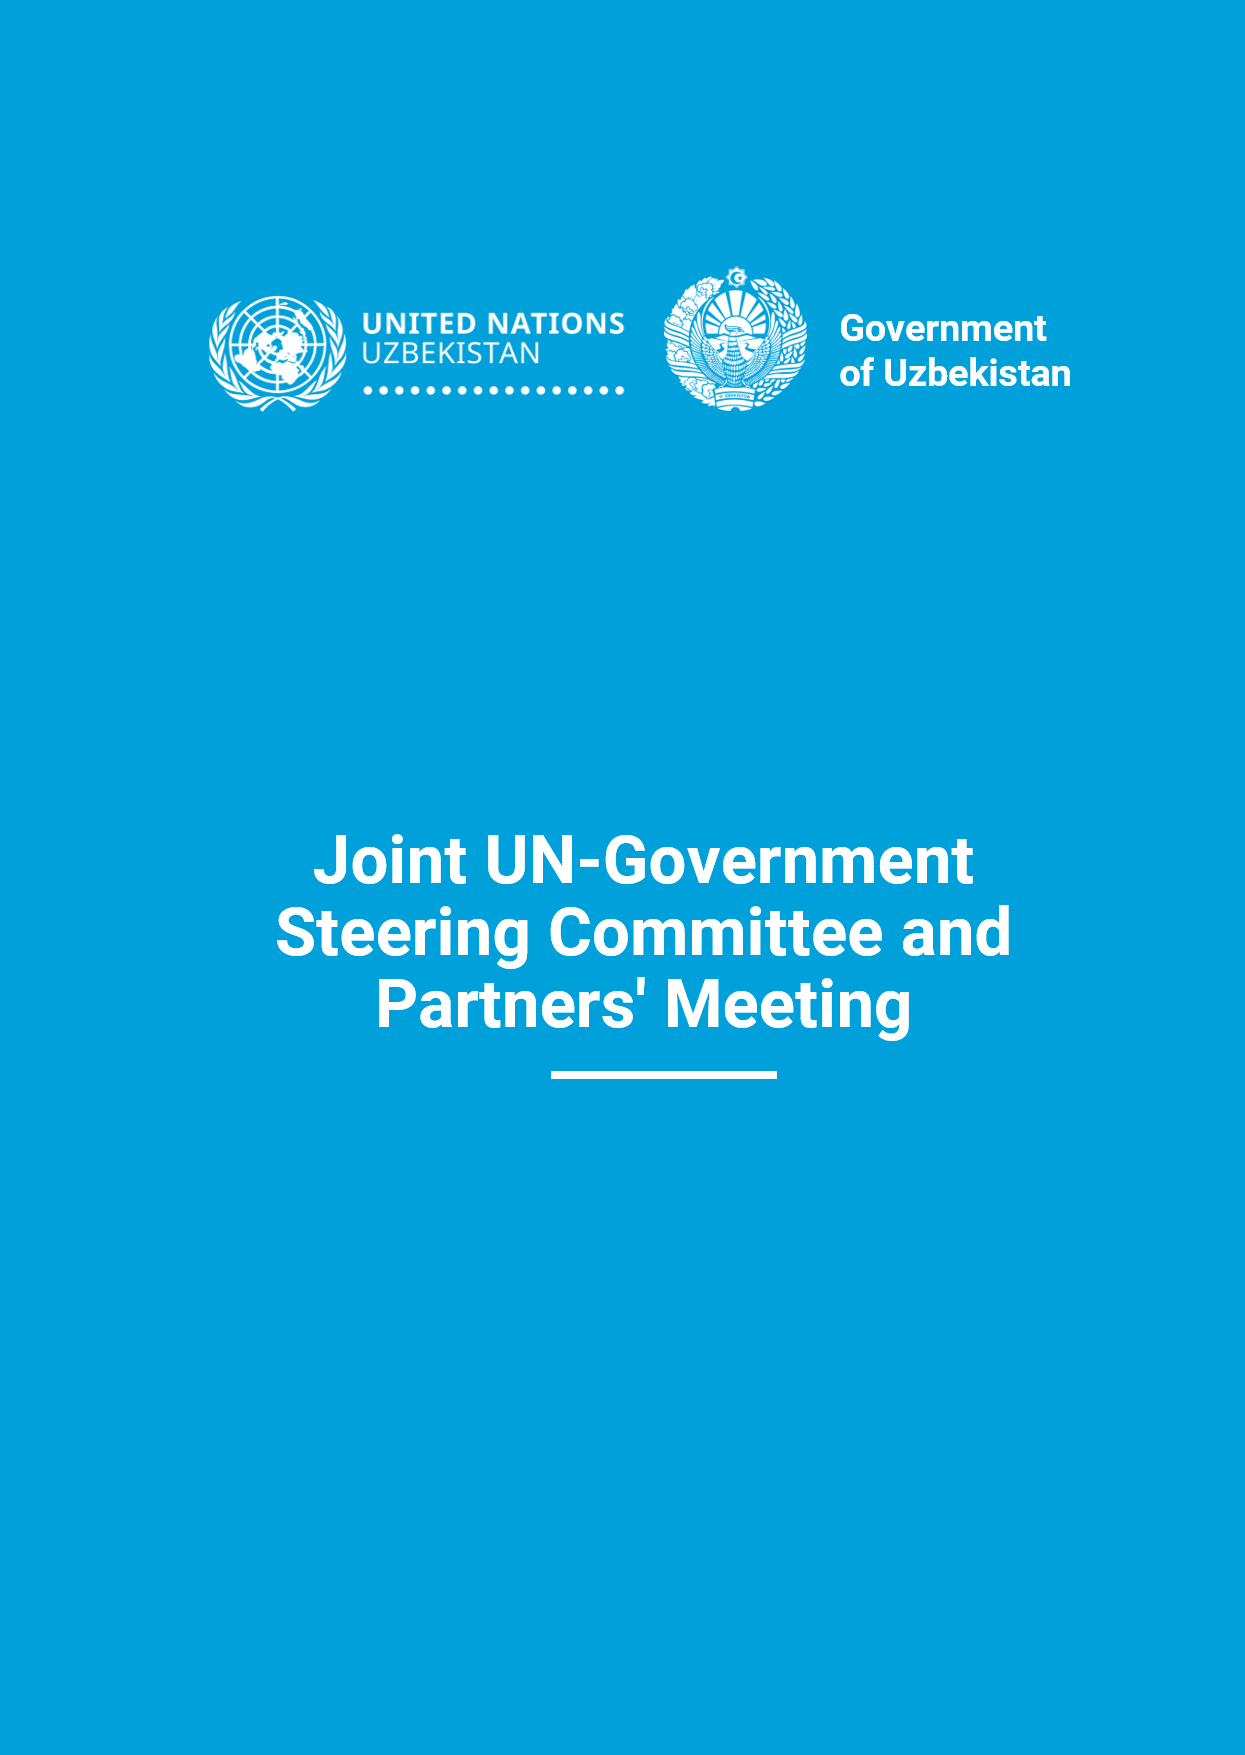 Joint UN-Government Steering Committee and Partners' Meeting